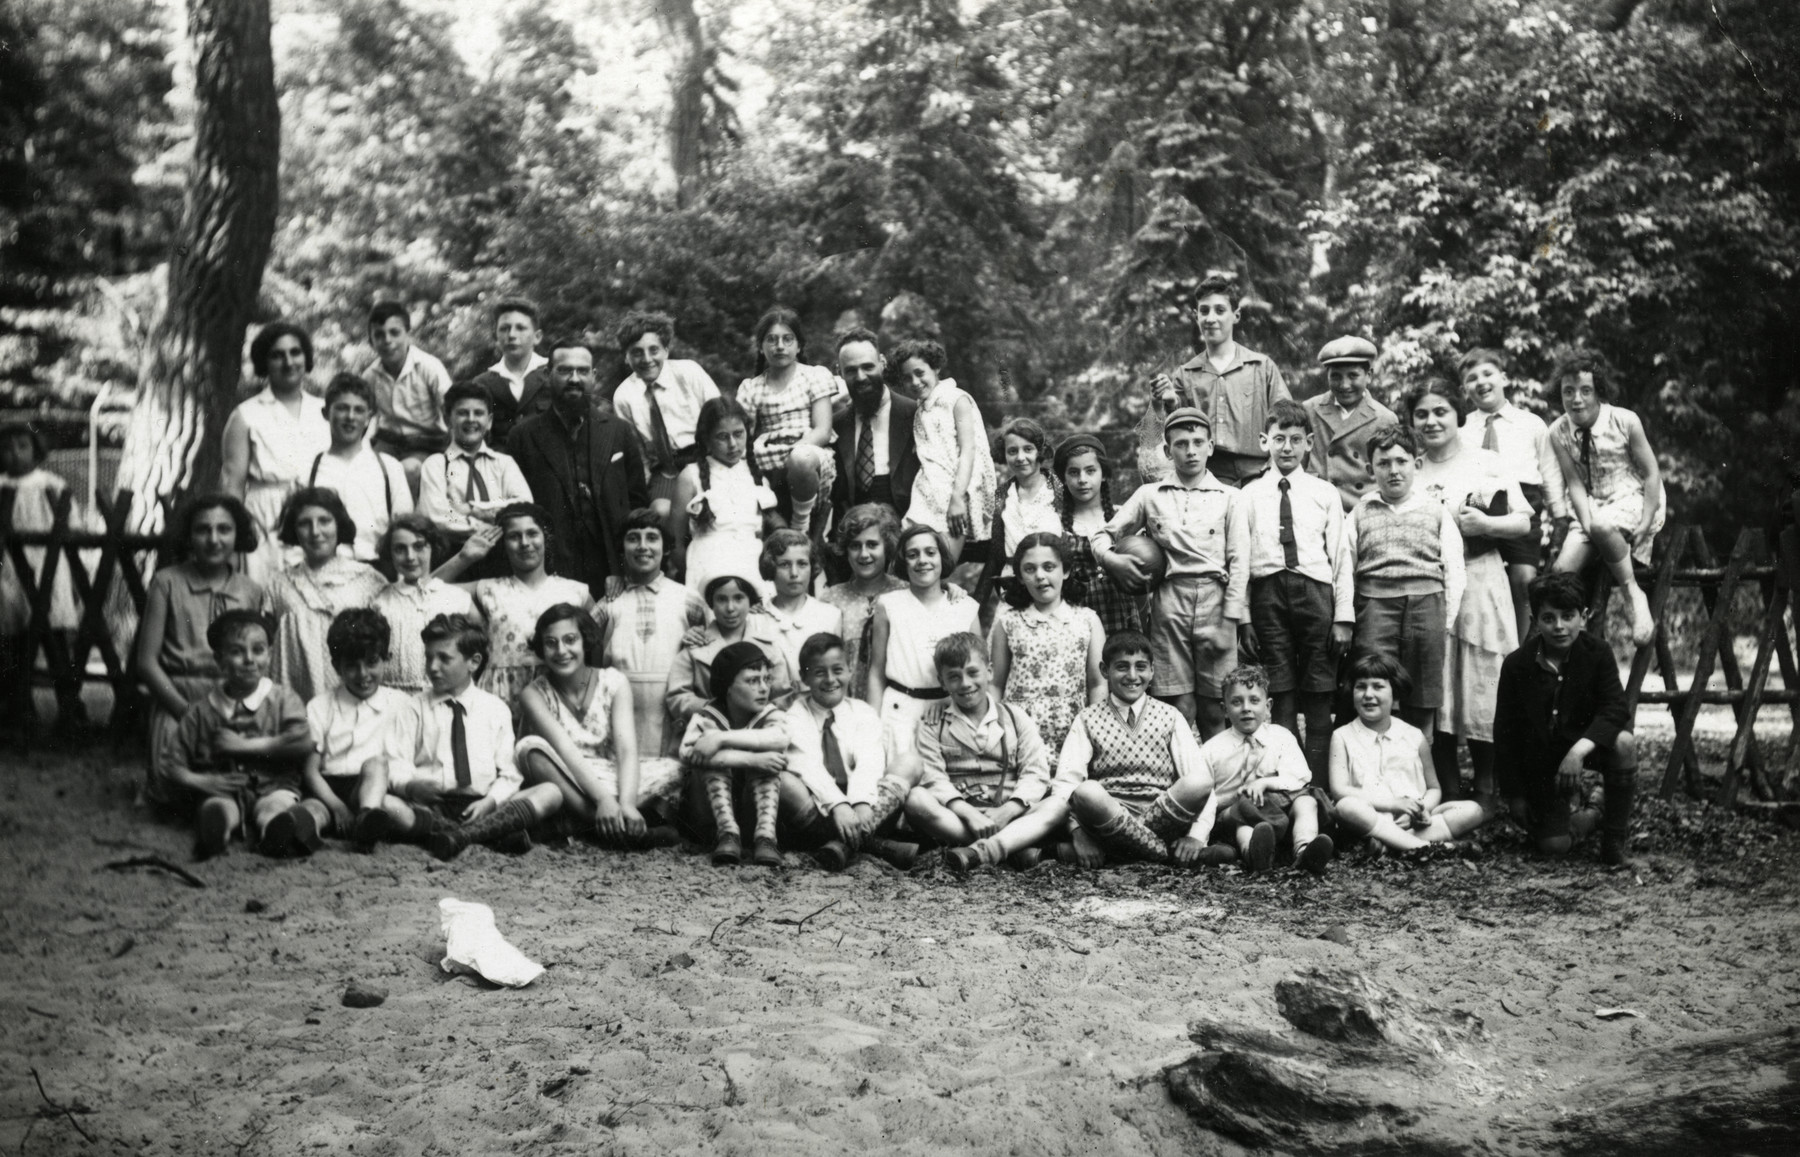 Group portrait of children from the Amsterdam Jewish school taken during a class outing.